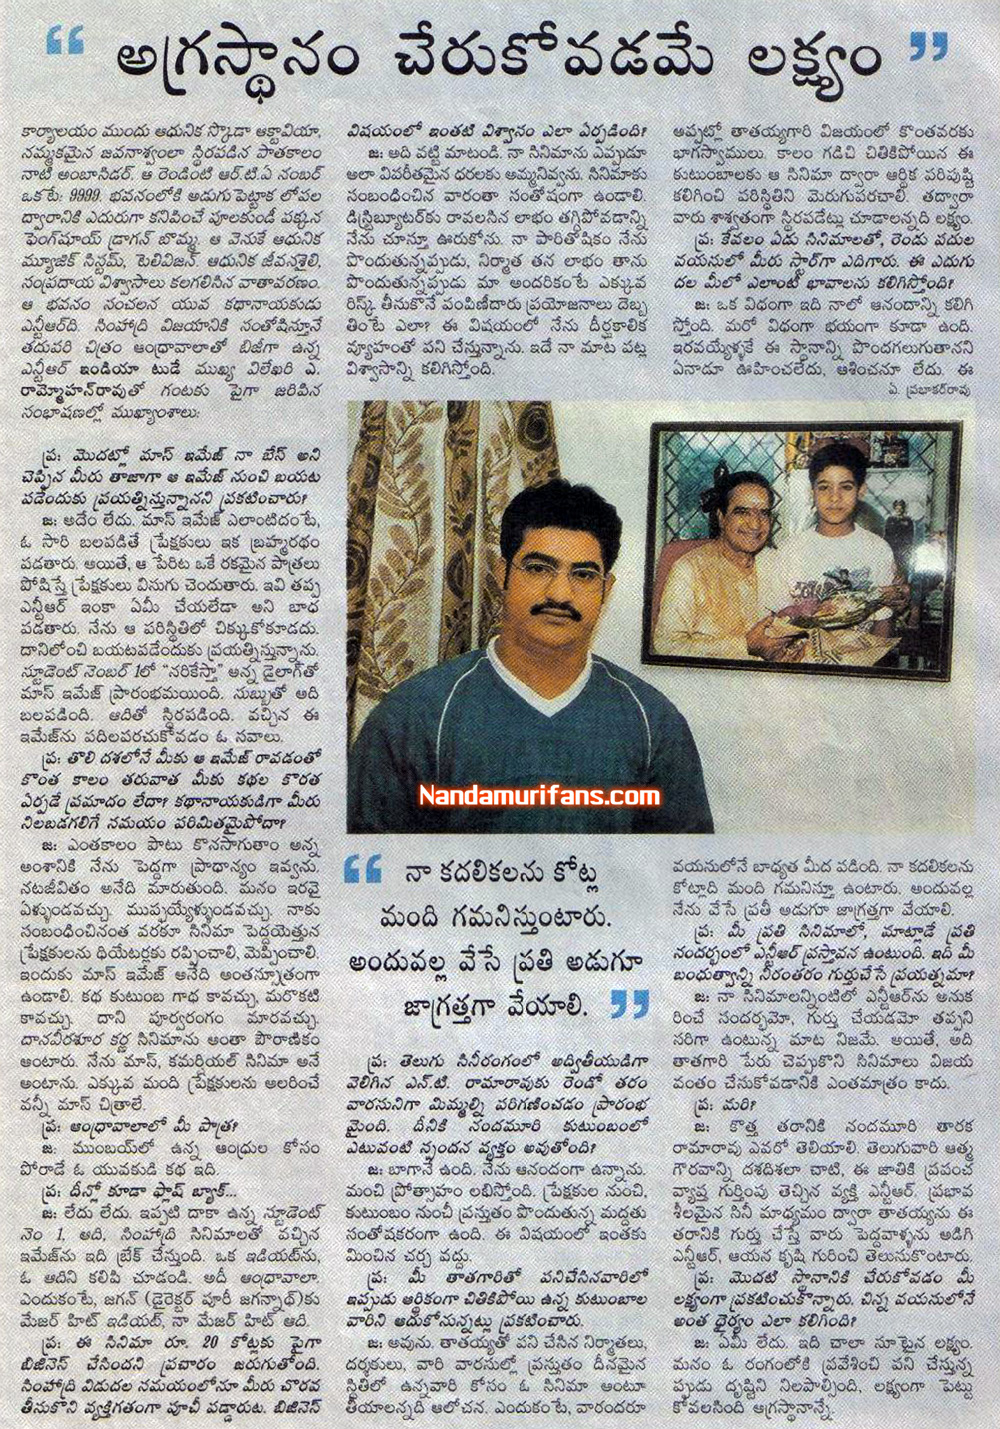 Indiatoday mainicle on NTR Jr. -5